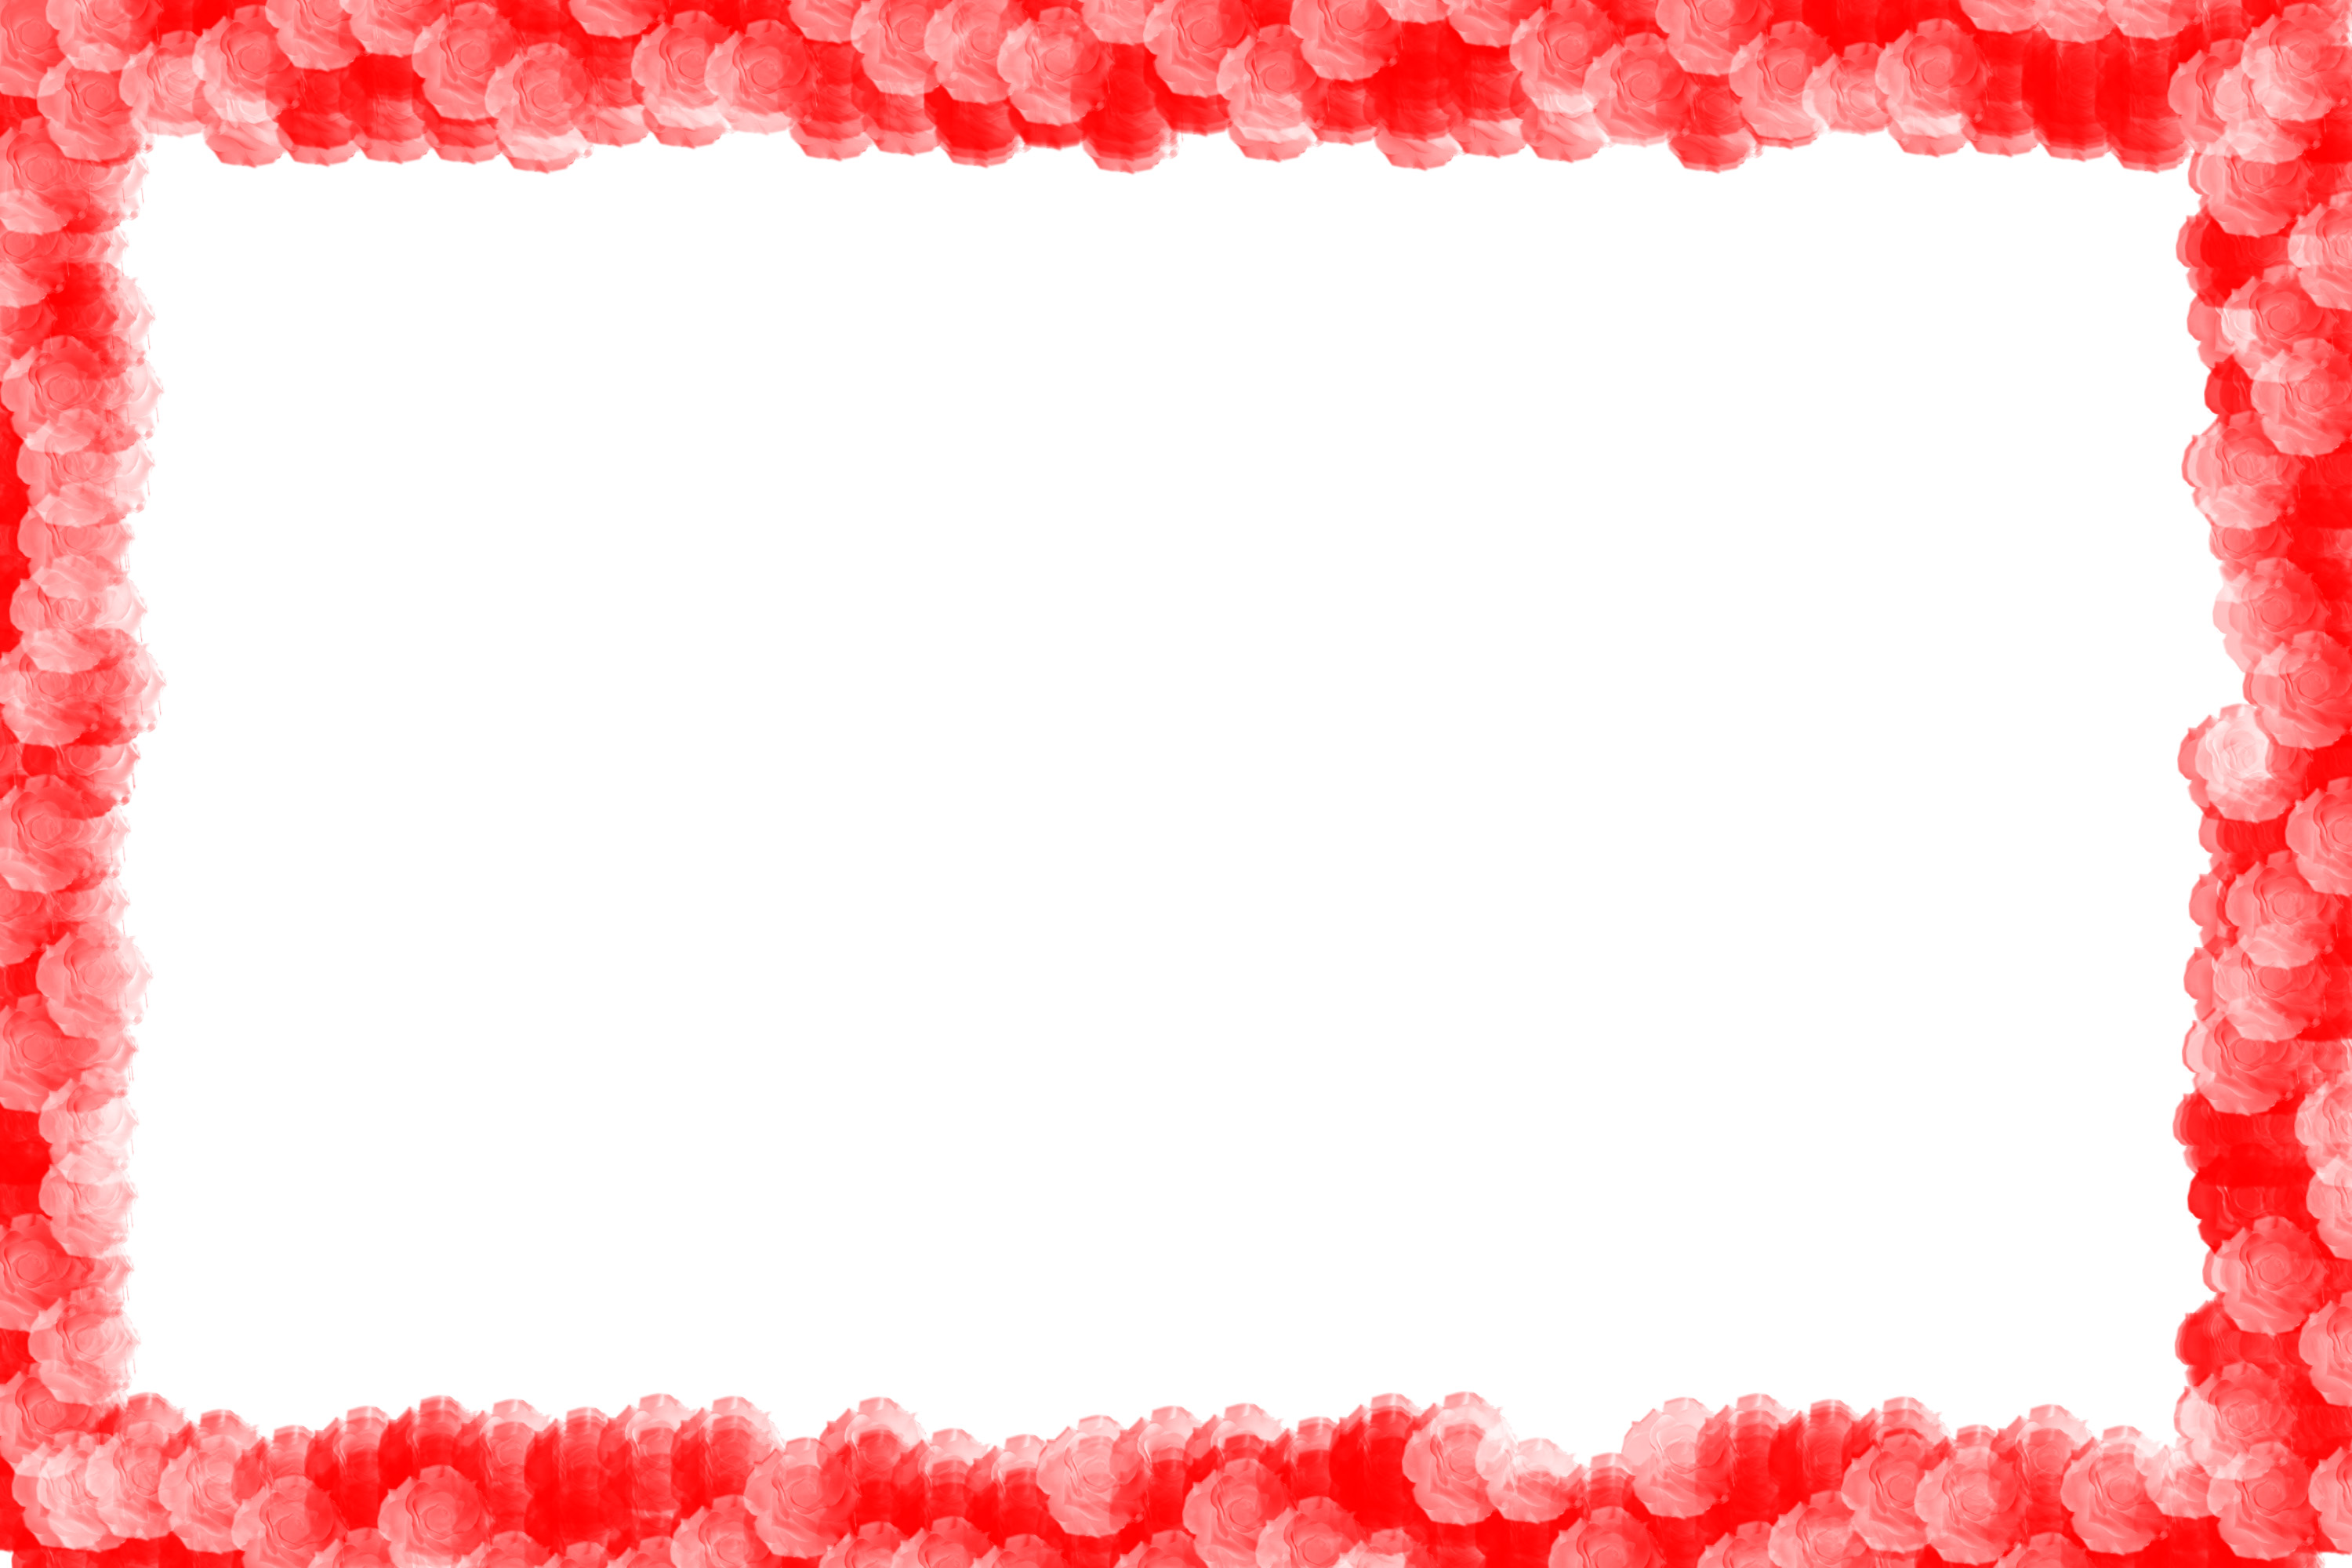 red flower frame png frame use this red flower frame png frame clipart ...